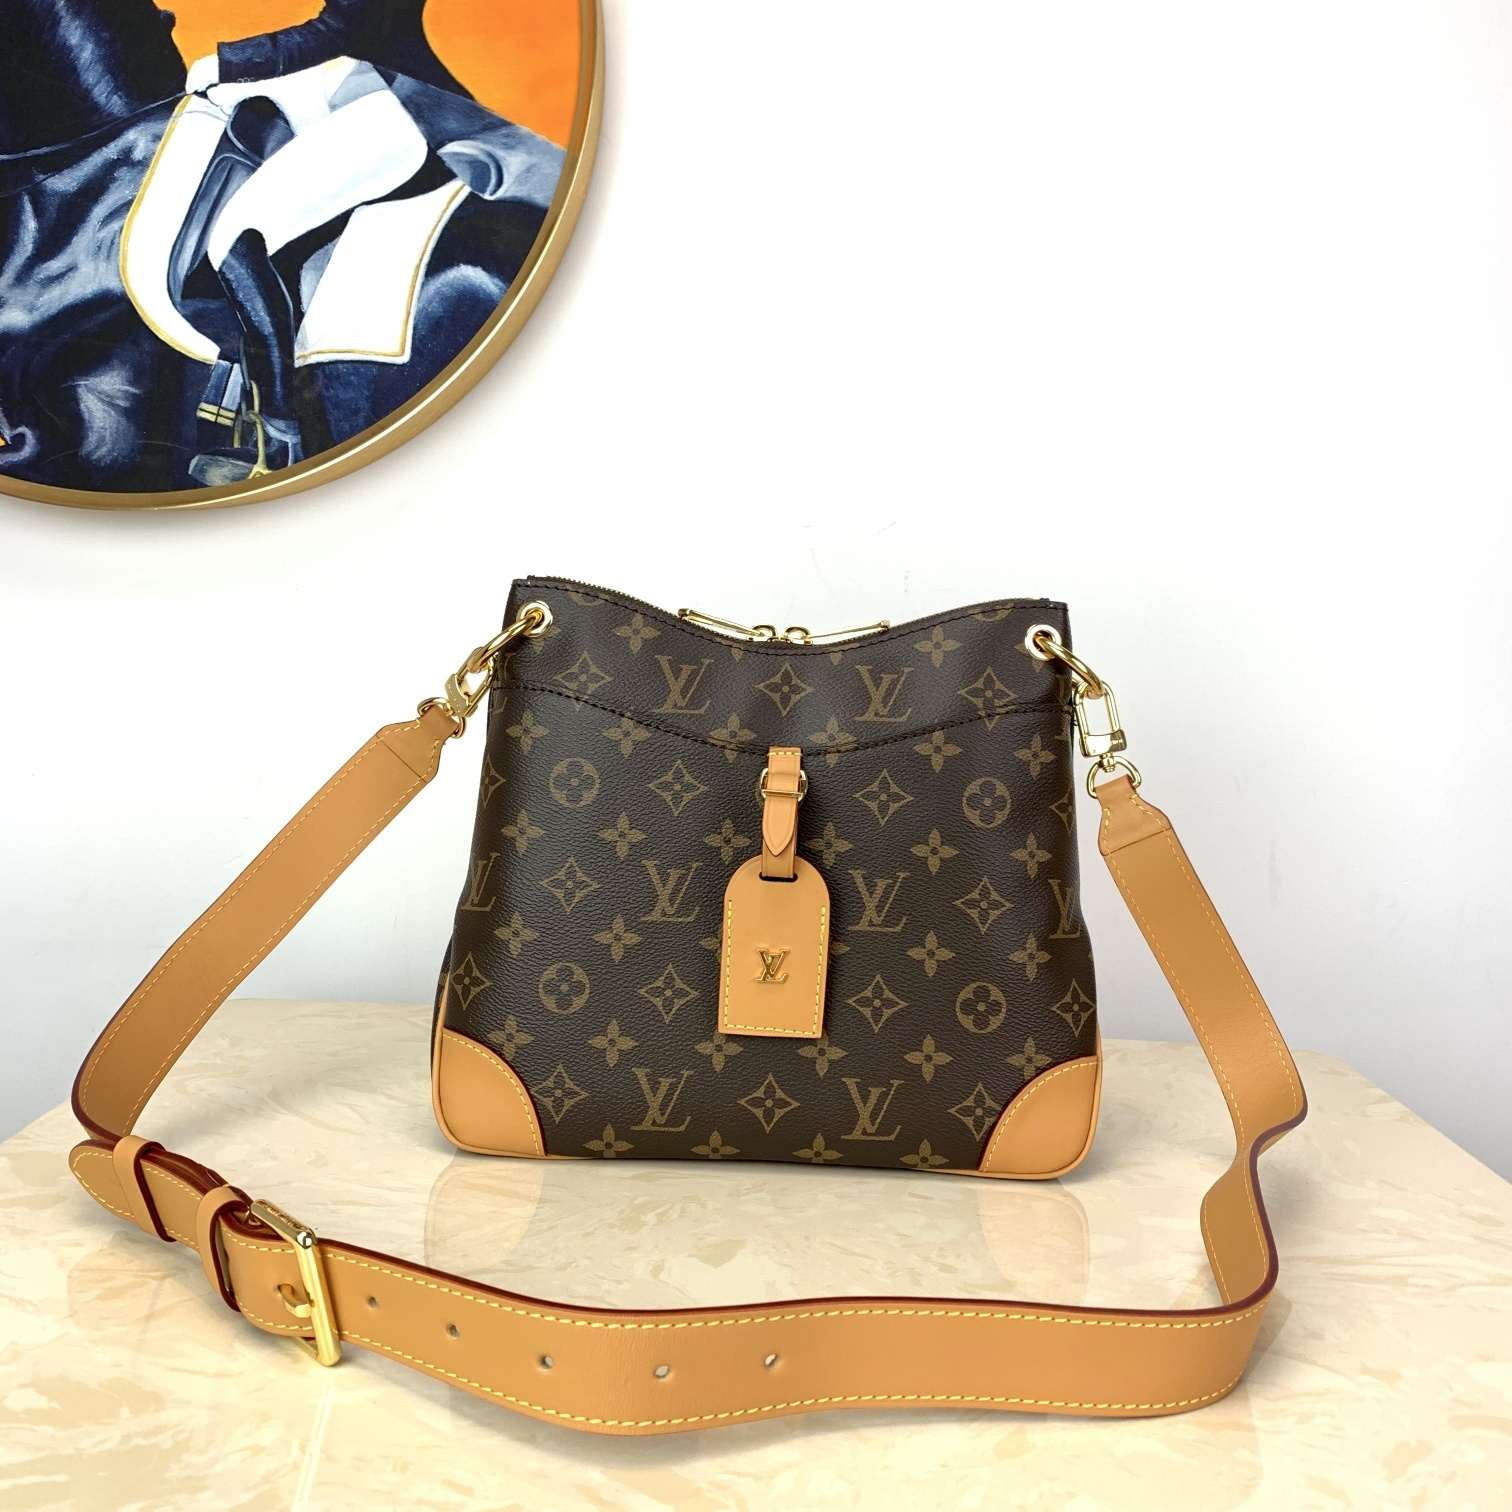 Perfect Replica Louis Vuitton M45352 Odeon MM Stylish and Functional Shoulder Bag Monogram Coated Canvas